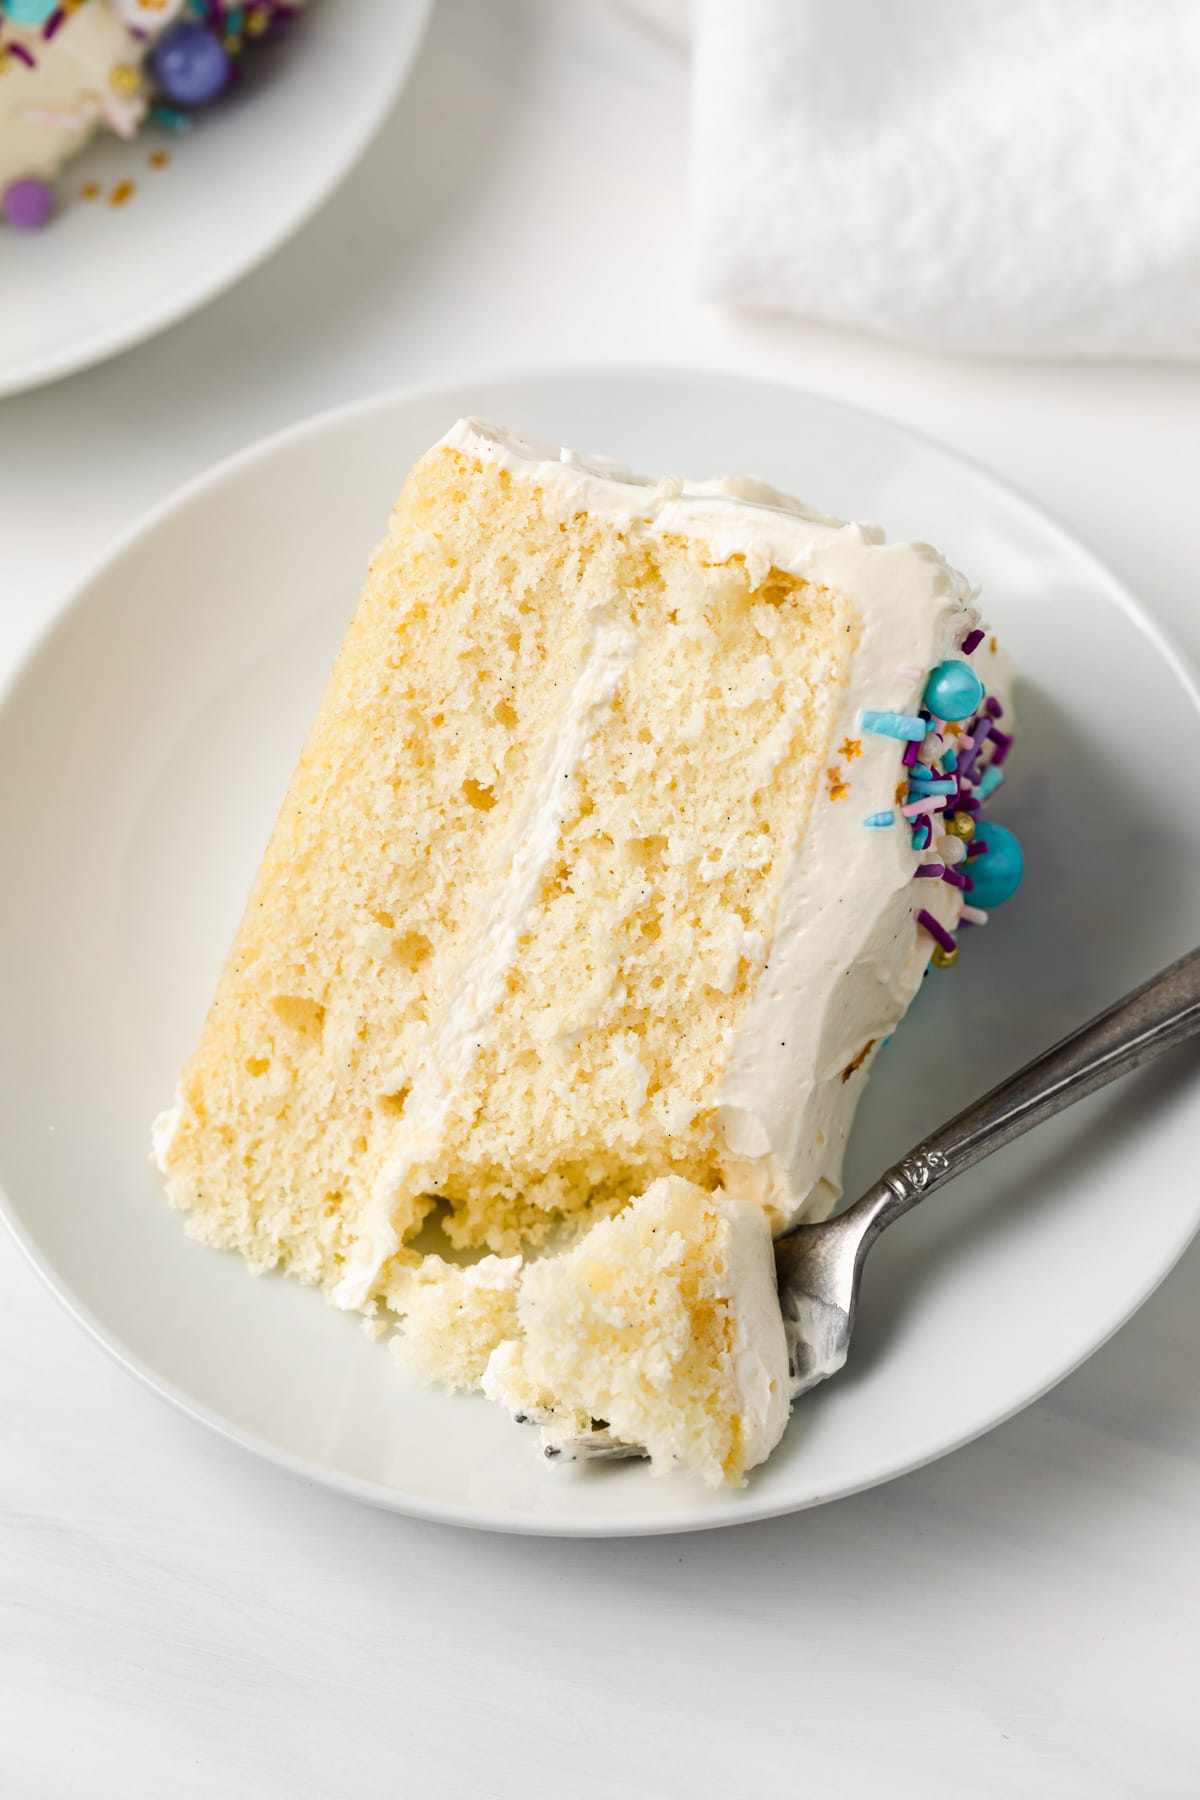 angled view of a slice of moist vanilla cake on white plate with a fork taking out a bite